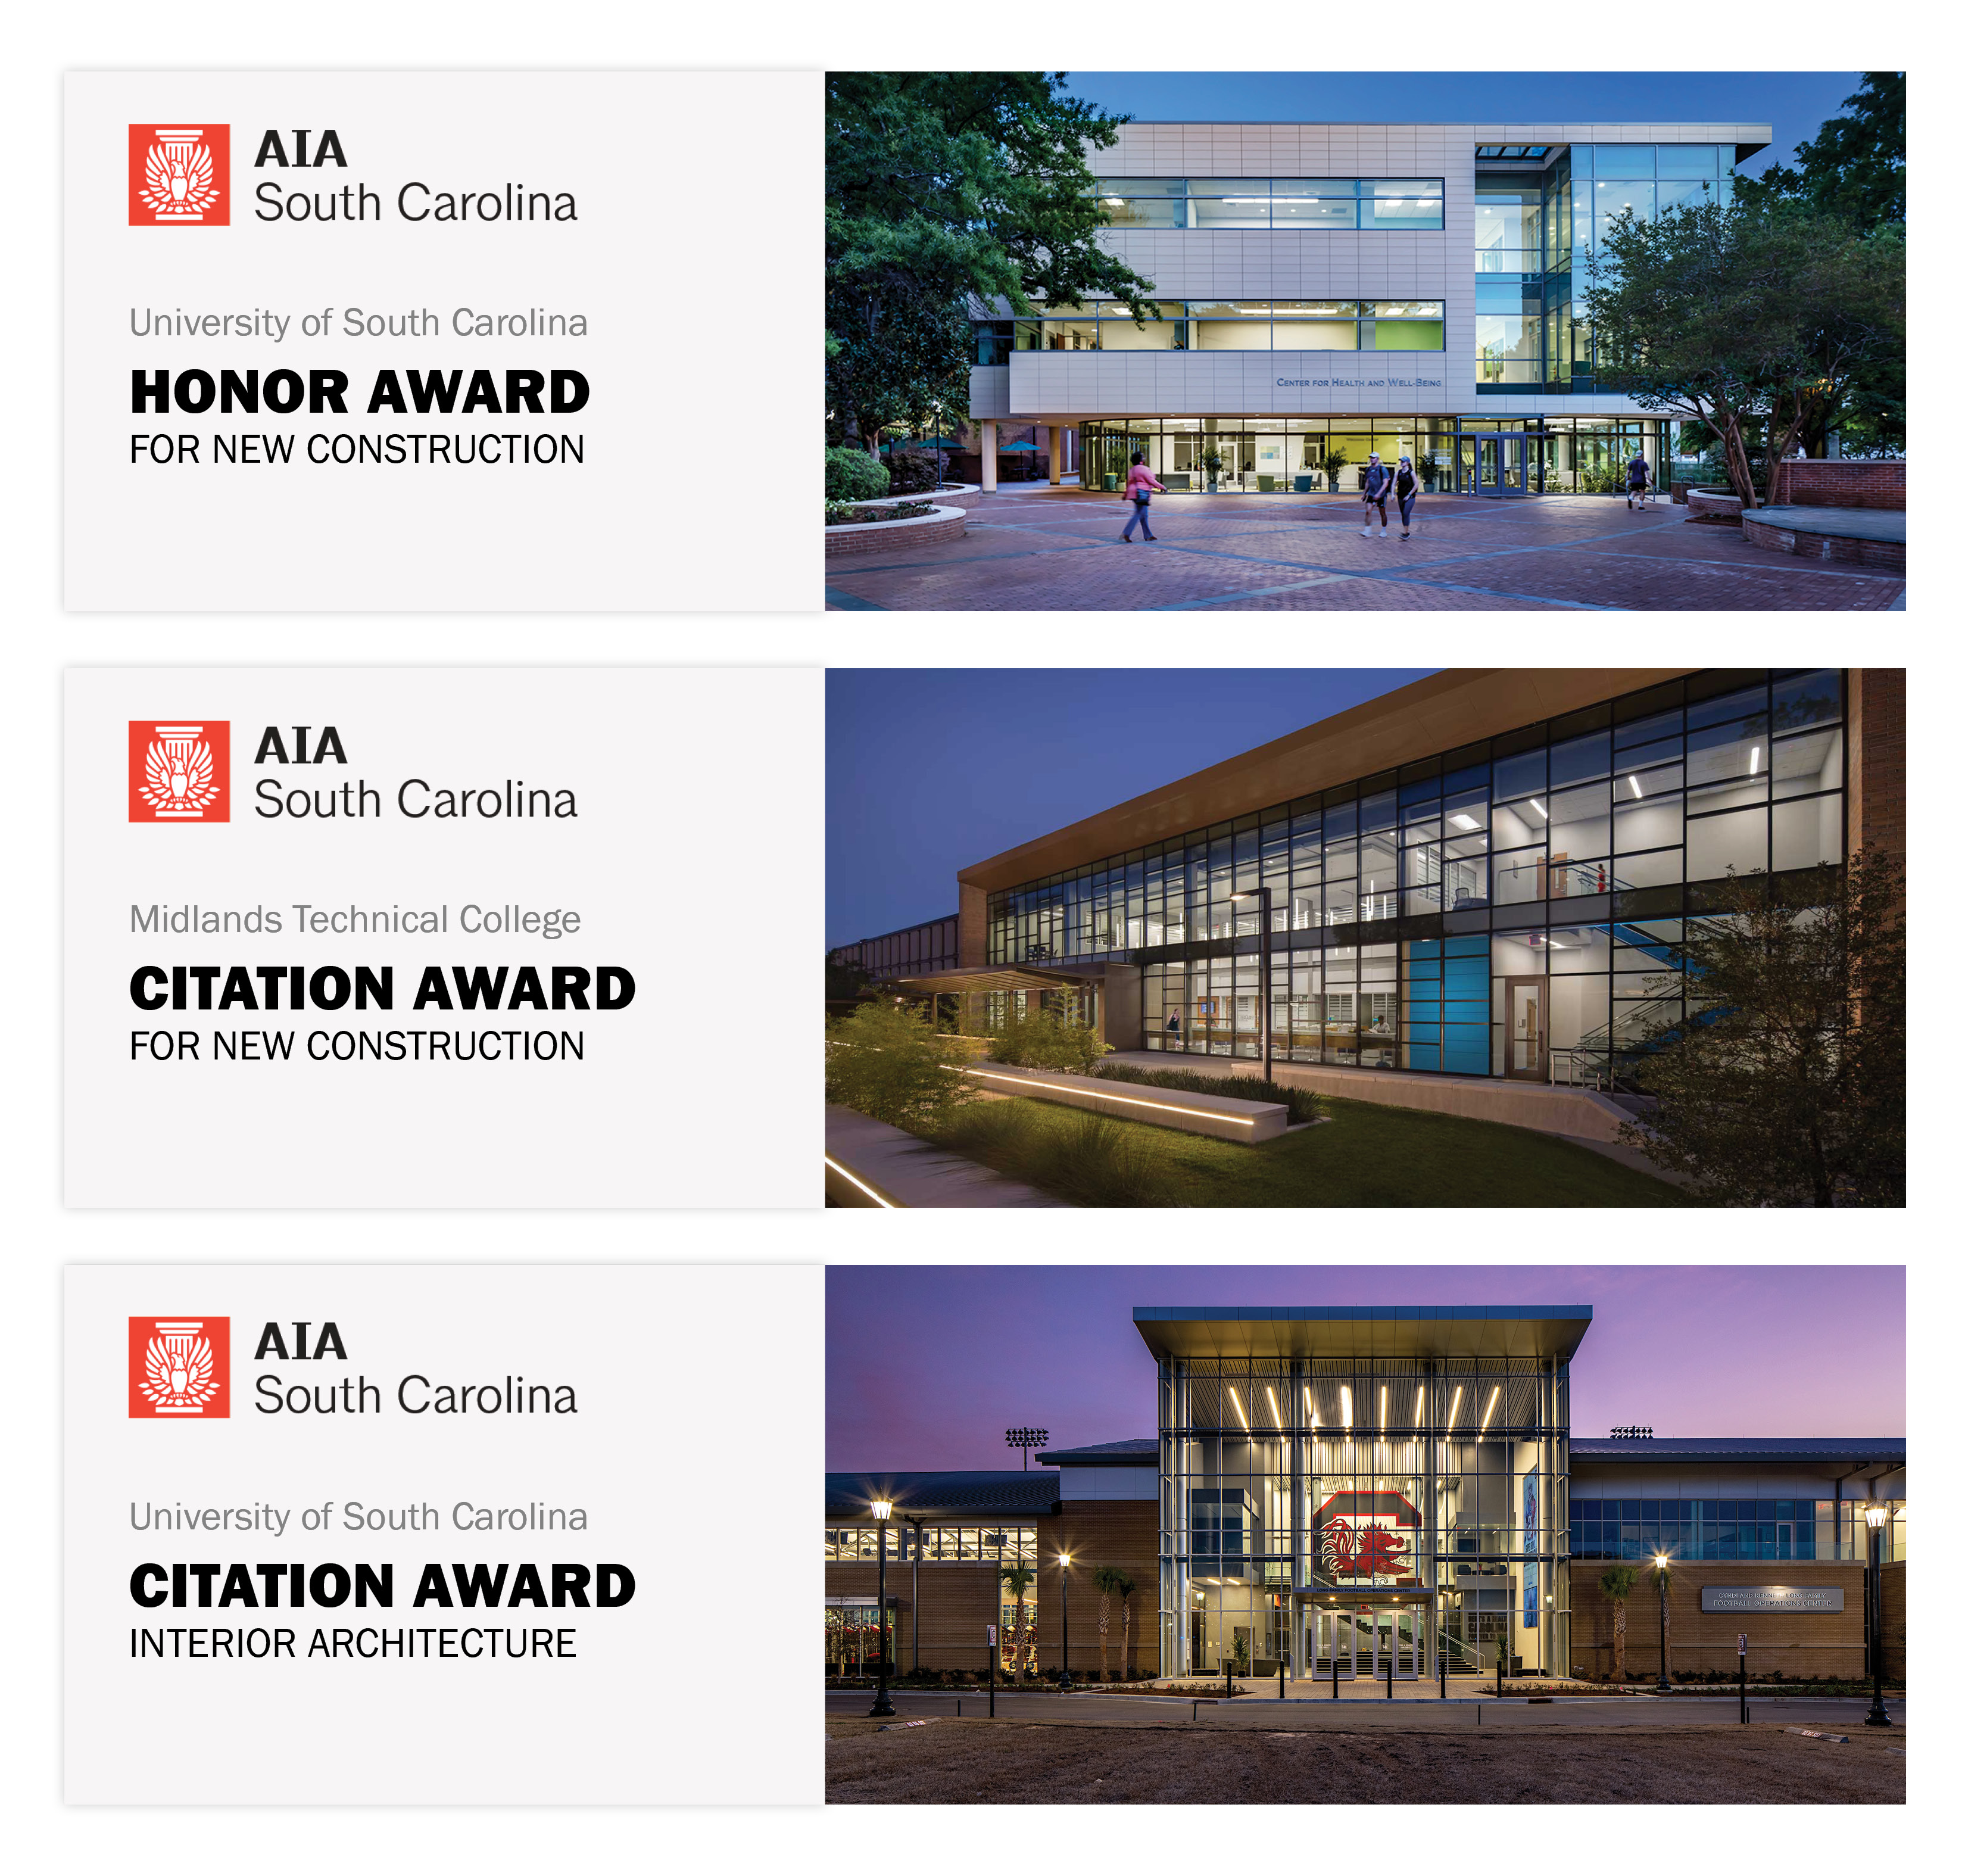 Quackenbush Architects Receive 3 Design Awards At Aiasc Annual Meeting Quackenbush Architects